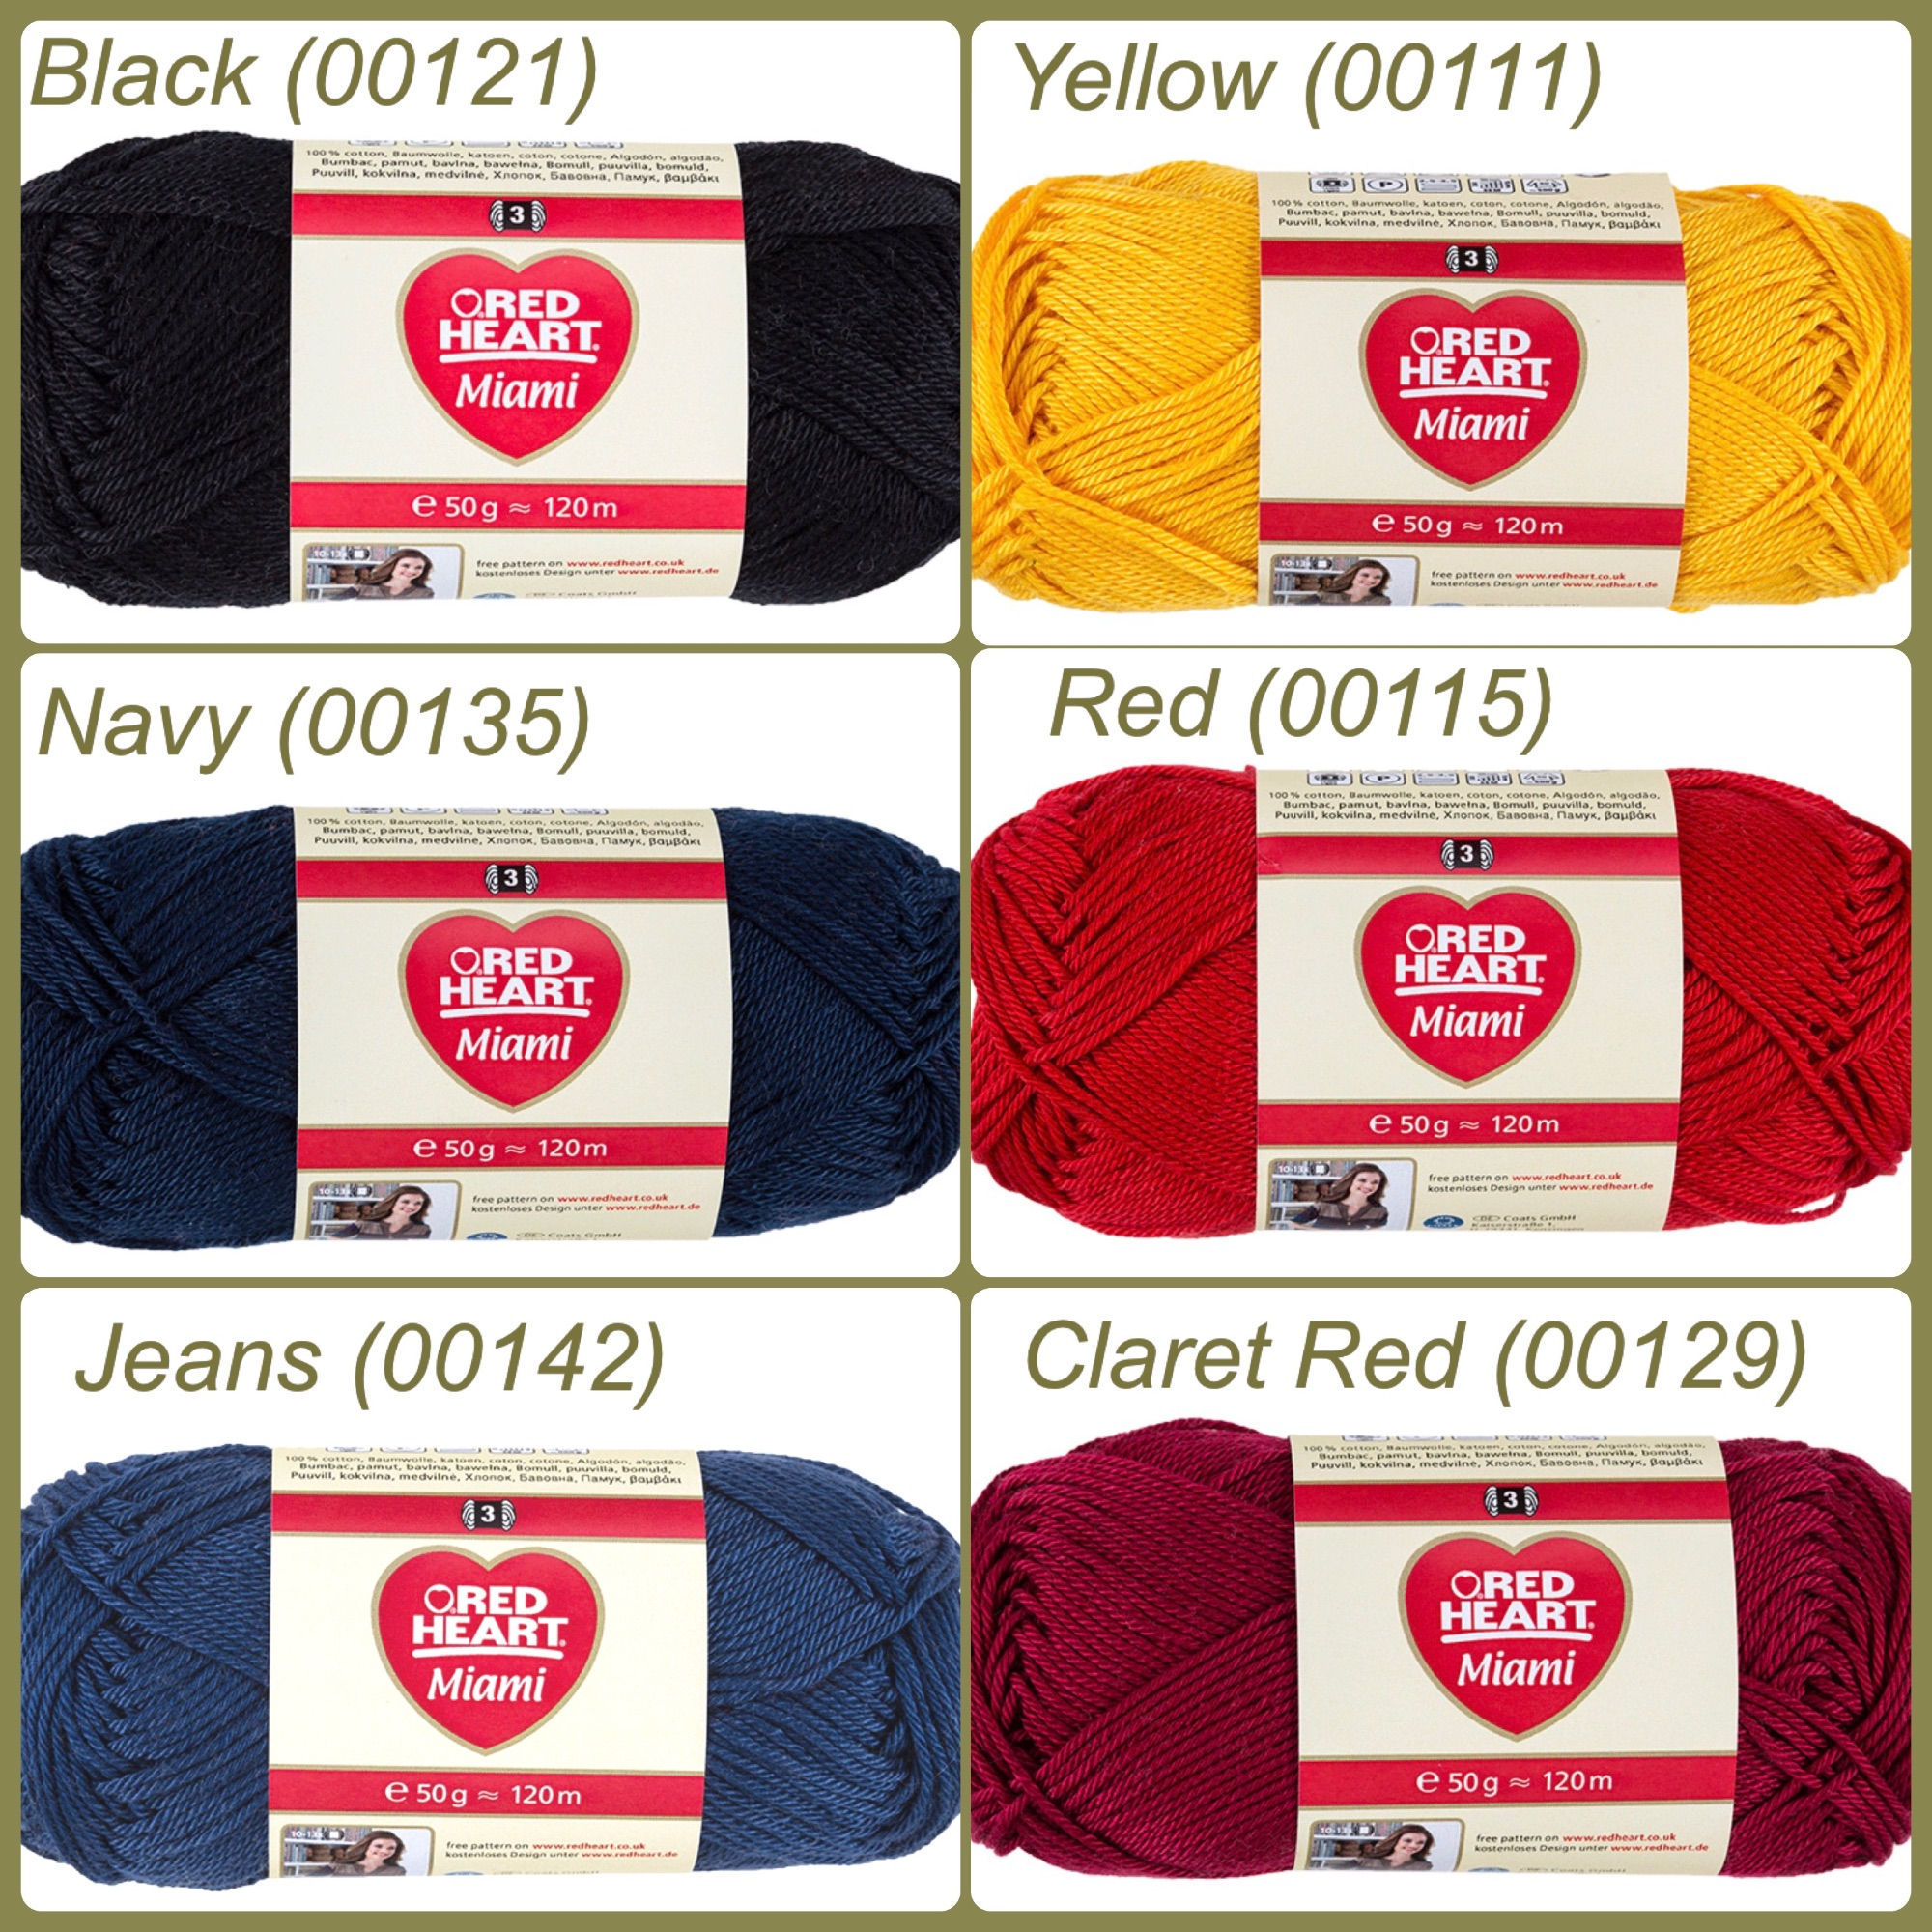 Red heart miami yarn colour black navy jeans yellow red claret